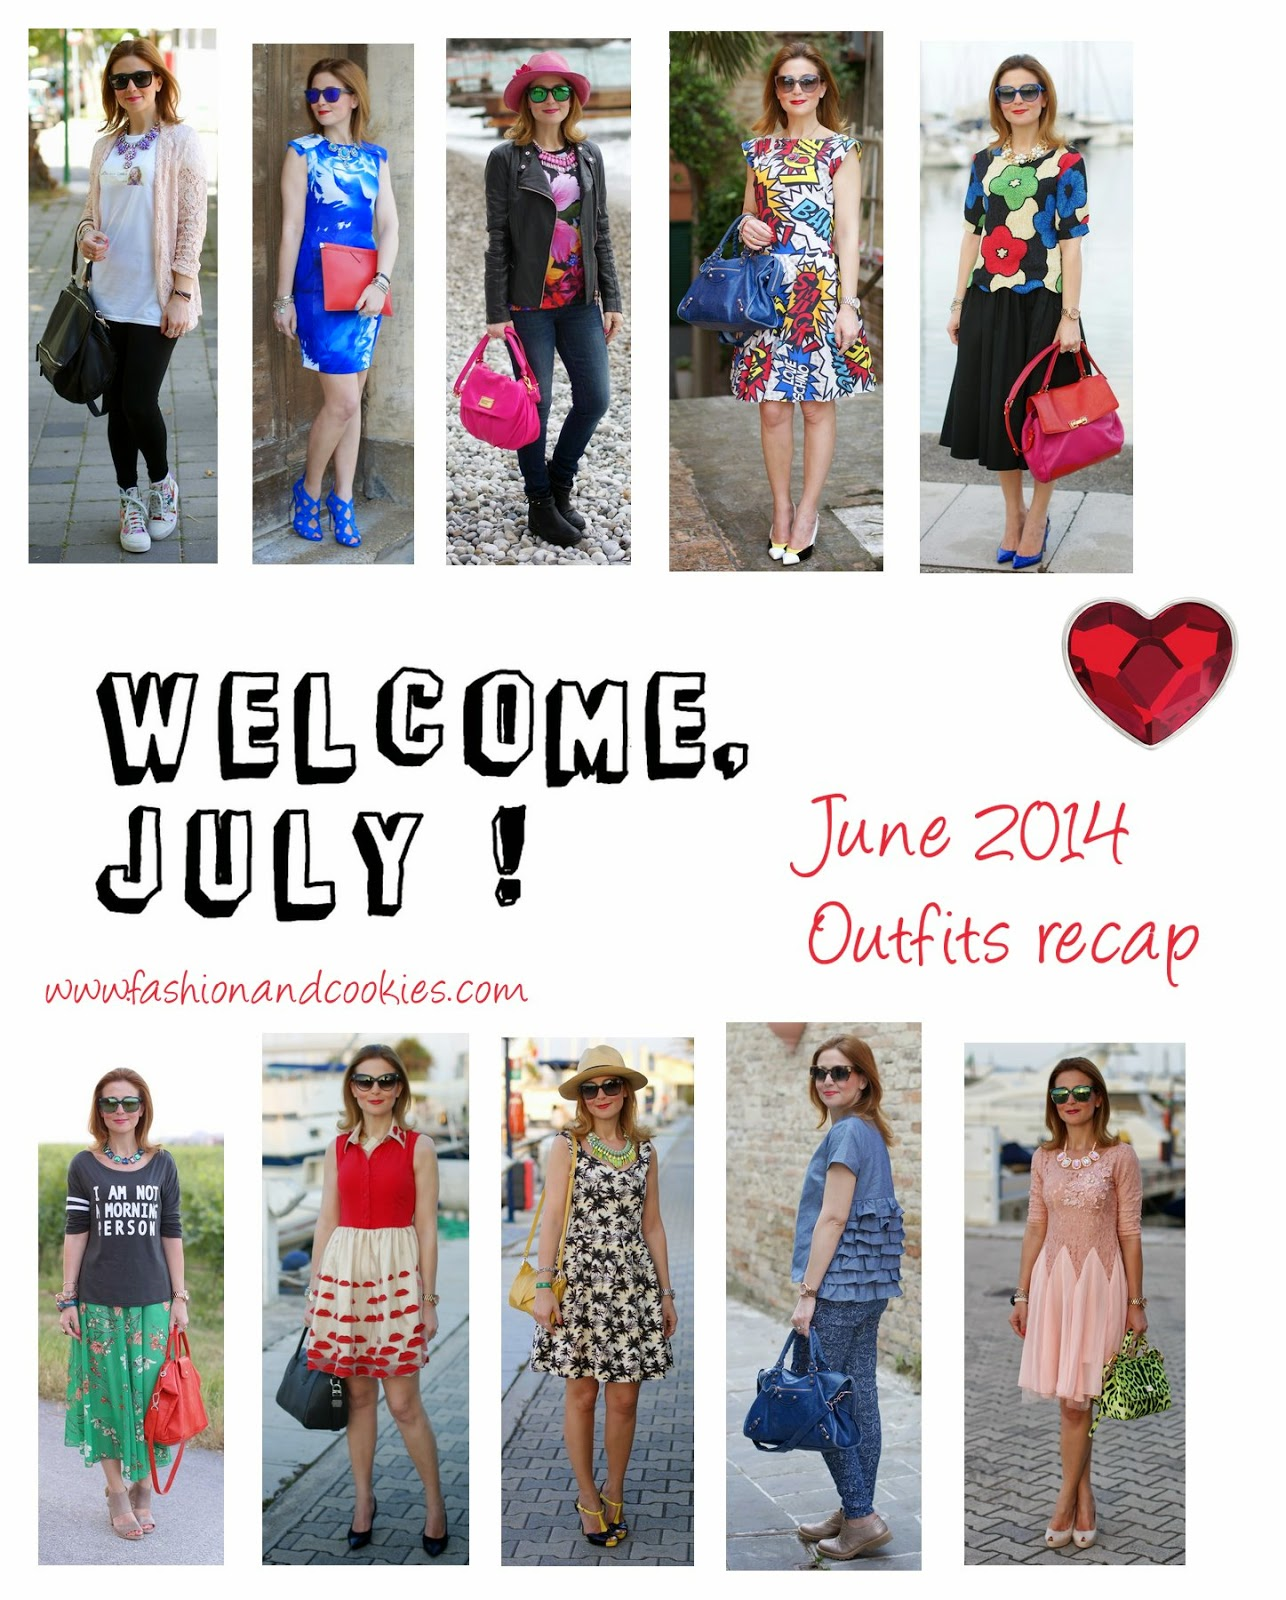 Outfits recap, Welcome July, Fashion and Cookies, fashion blogger